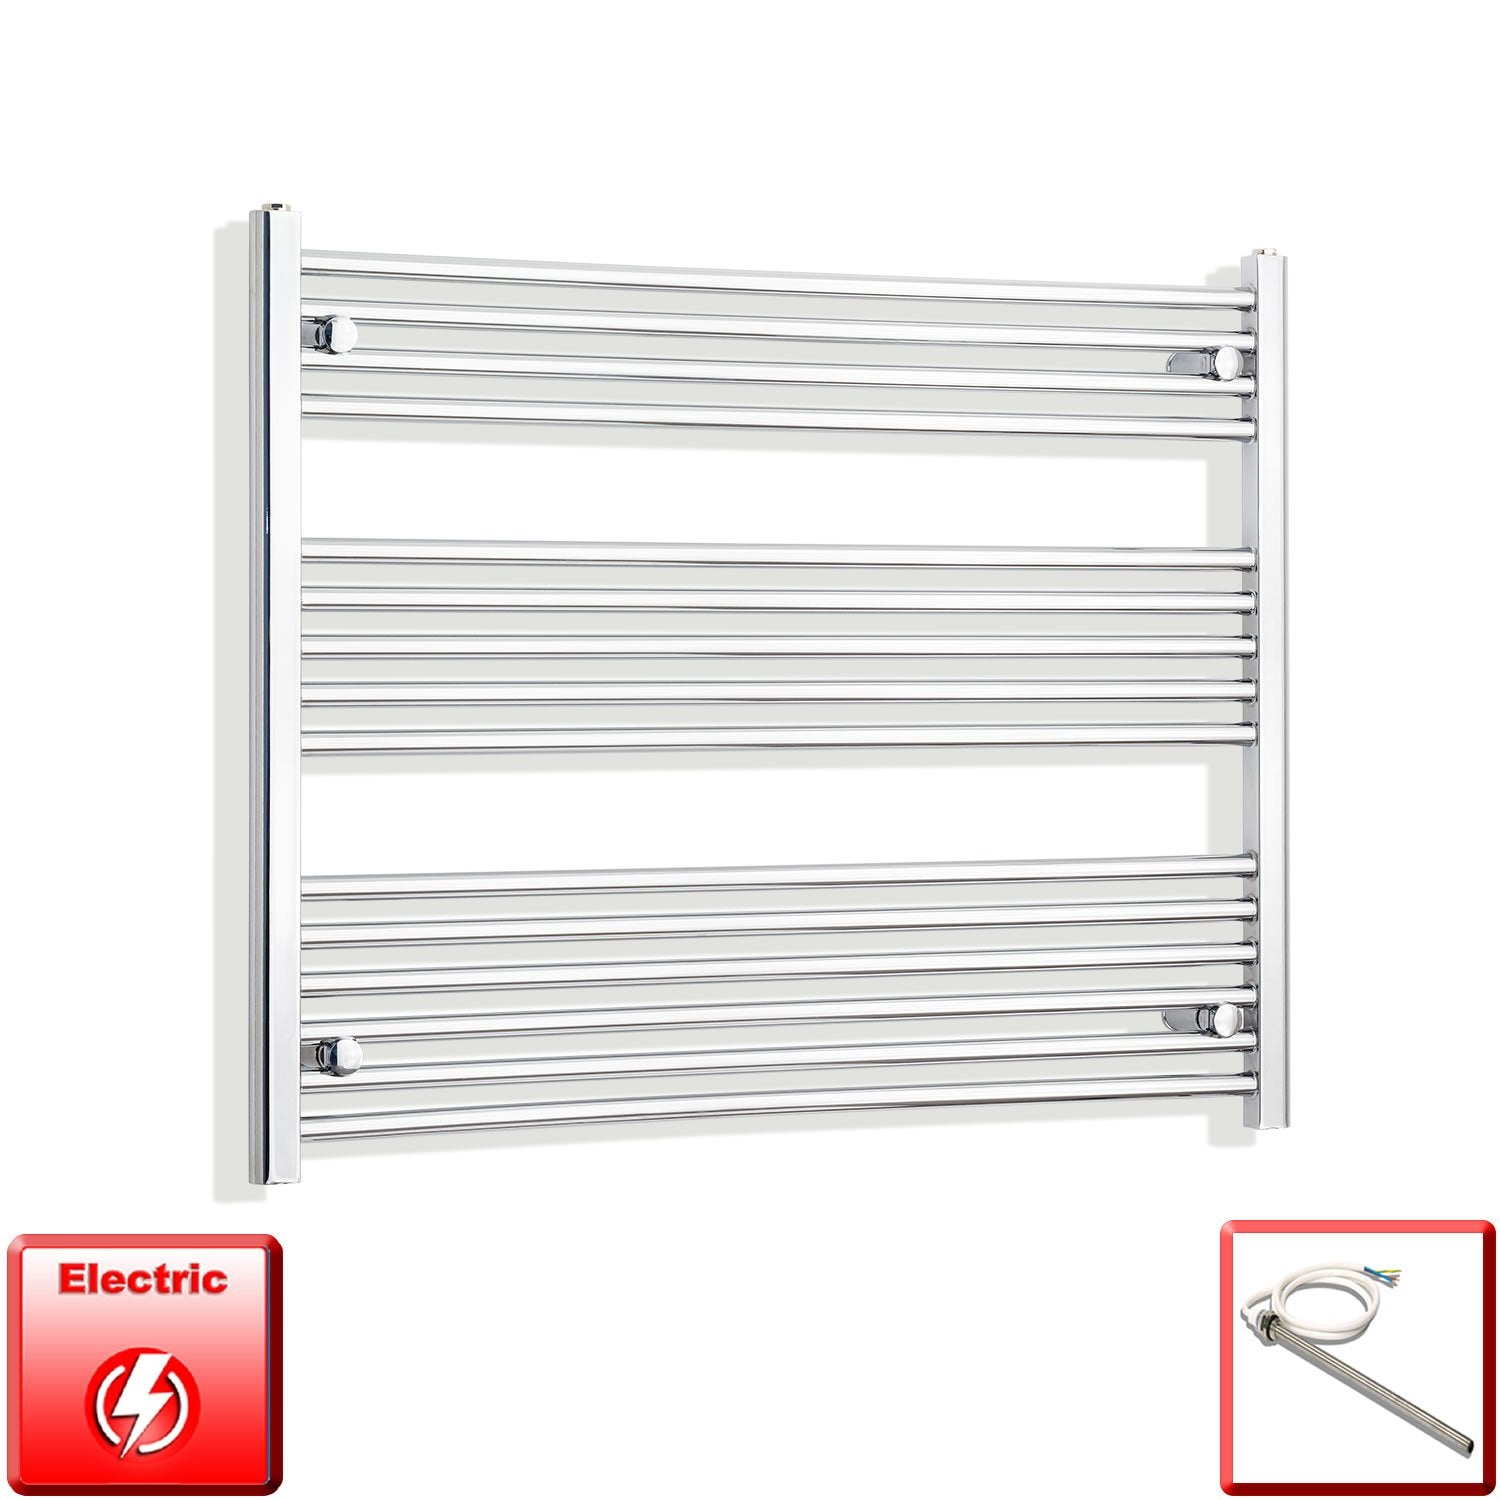 1000mm Wide 800mm High Flat Chrome Pre-Filled Electric Heated Towel Rail Radiator HTR,Single Heat Element